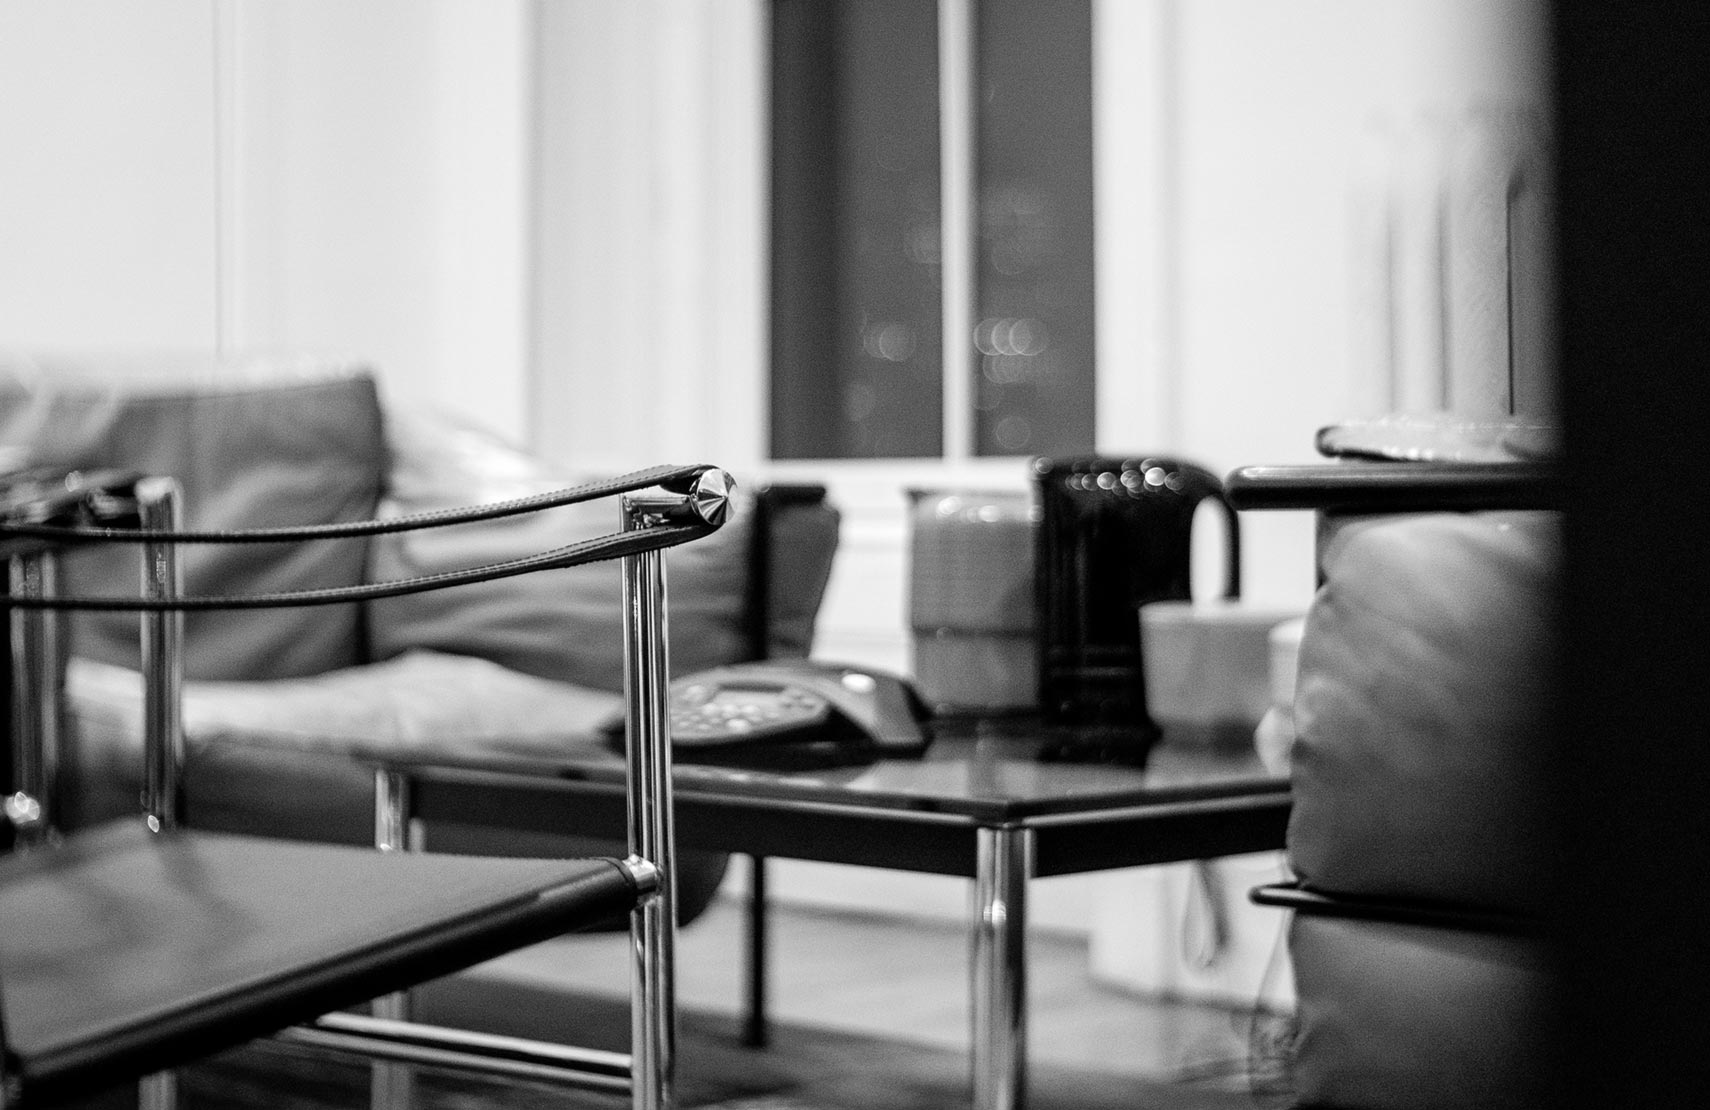 Table and chairs in Roger Sametz's office in black and white